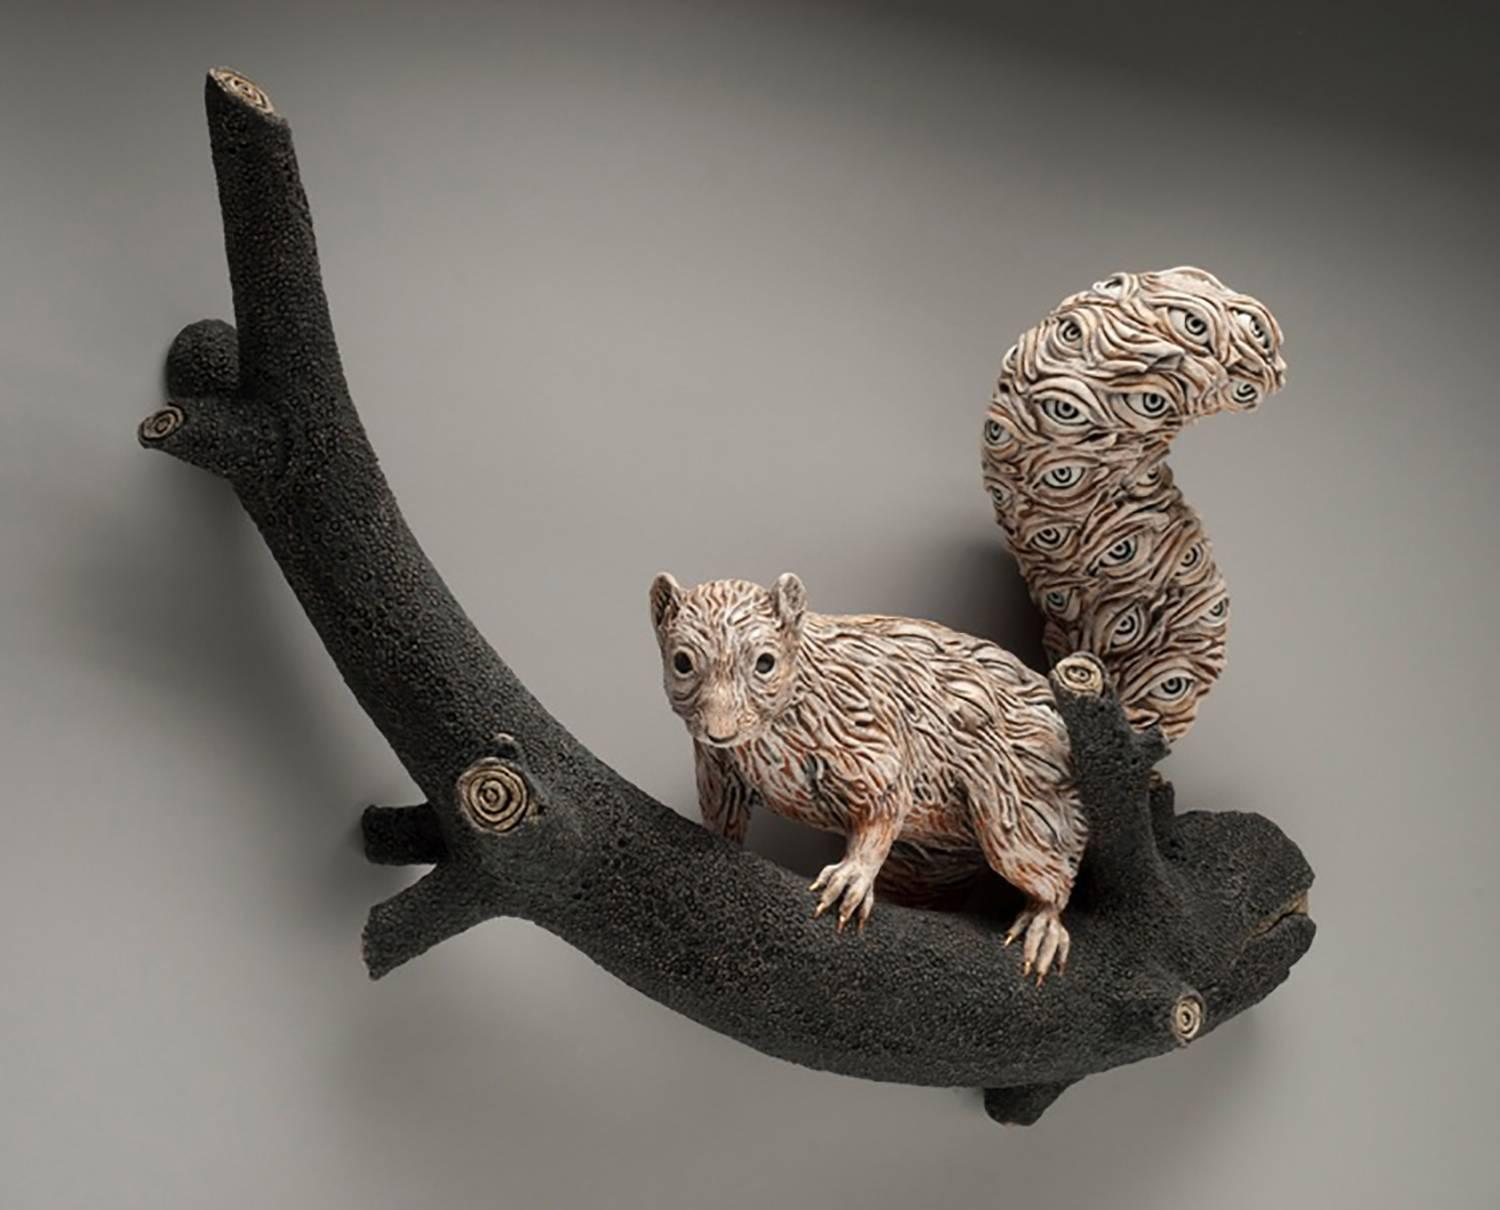 AWARENESS - hand-built ceramic sculpture of squirrel with many eyes in body